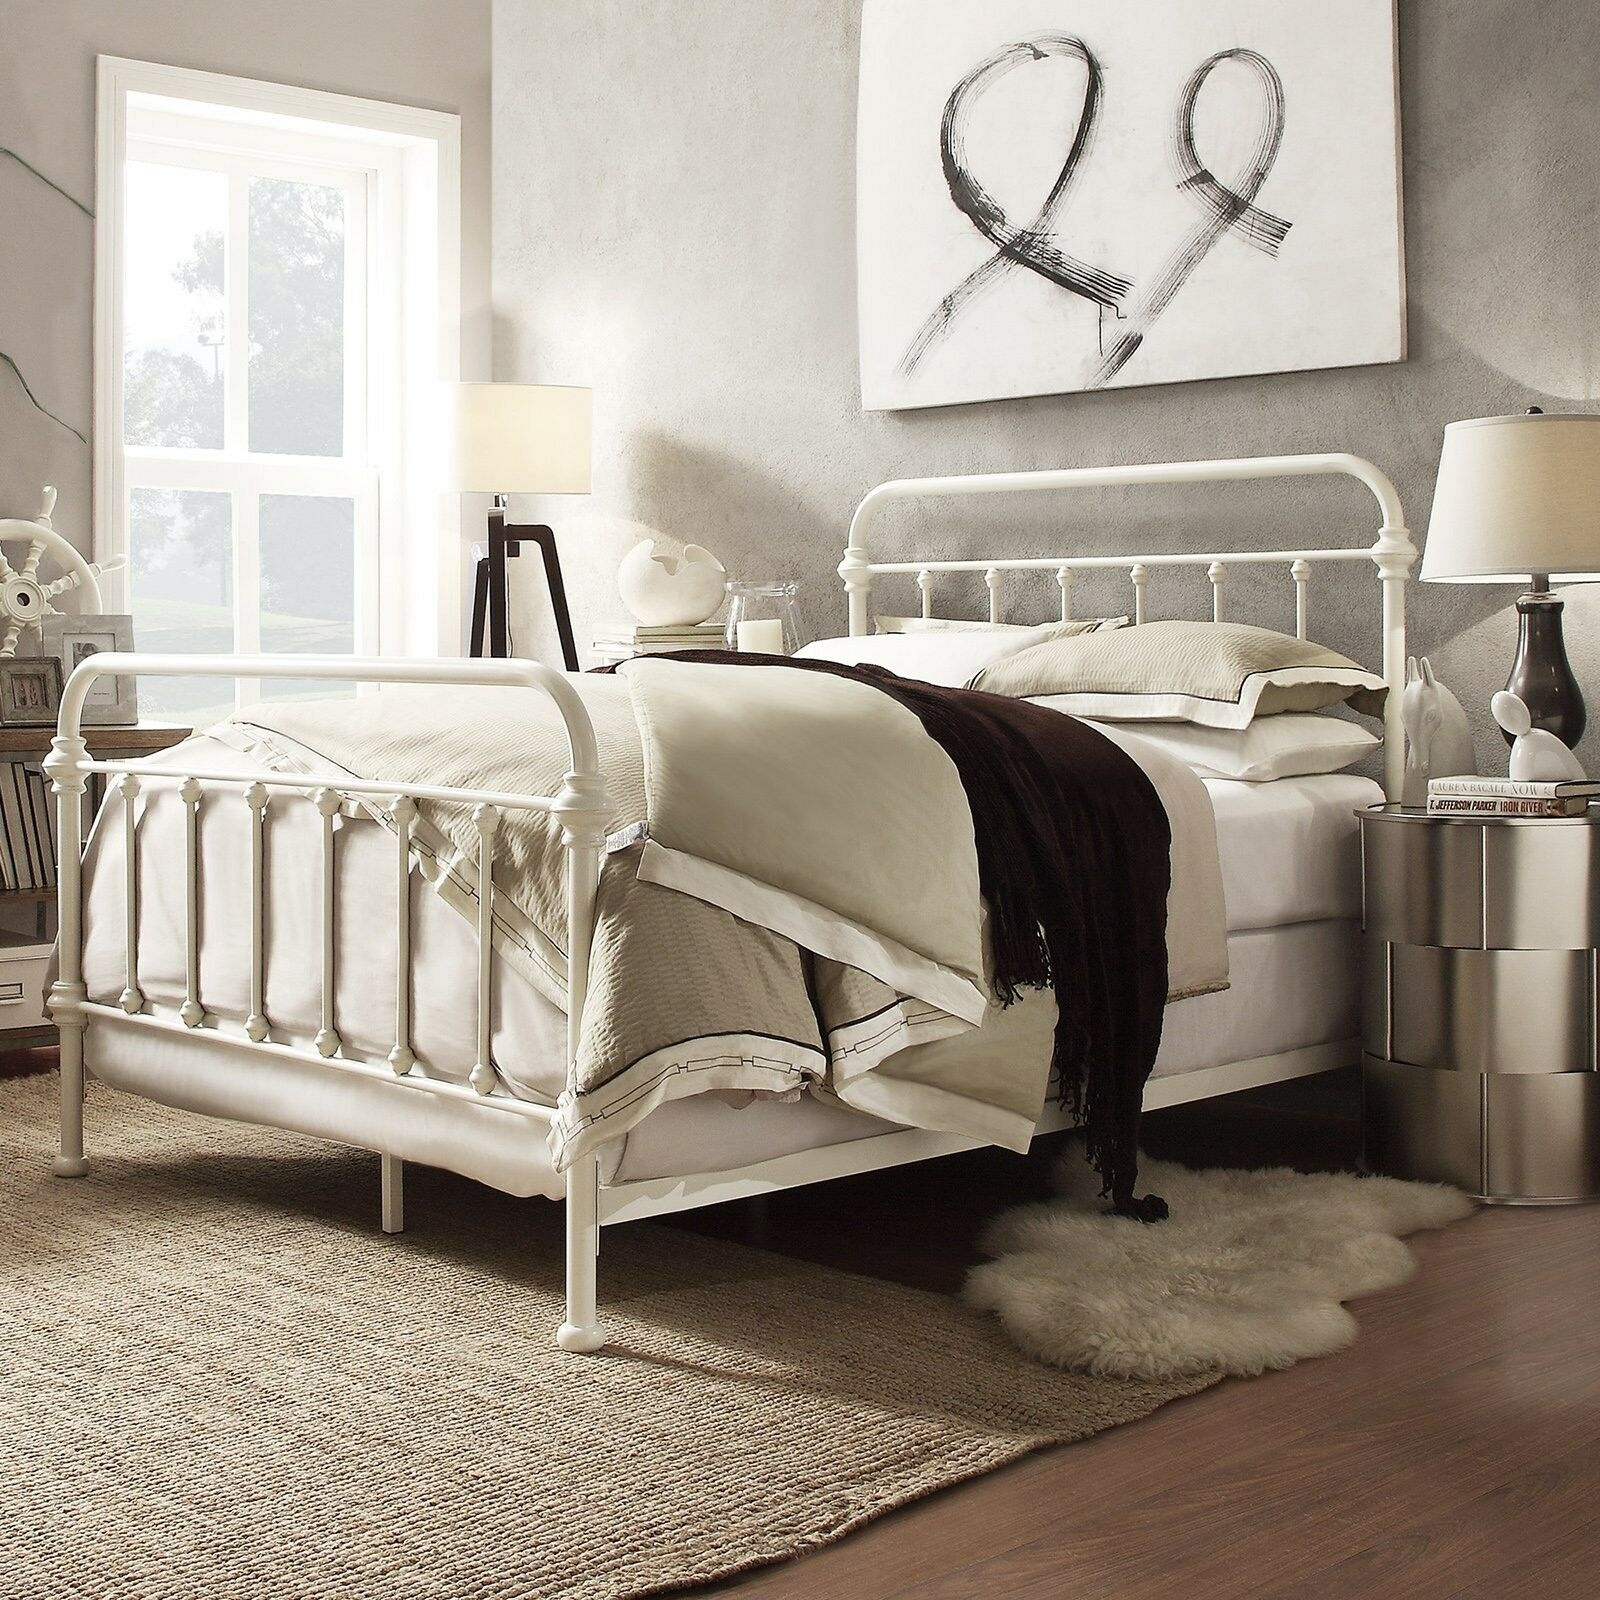 the best attitude 6c35c 0af95 Details about Queen Size Complete Bed Vintage Style Metal Headboard  Footboard Spindle Frame